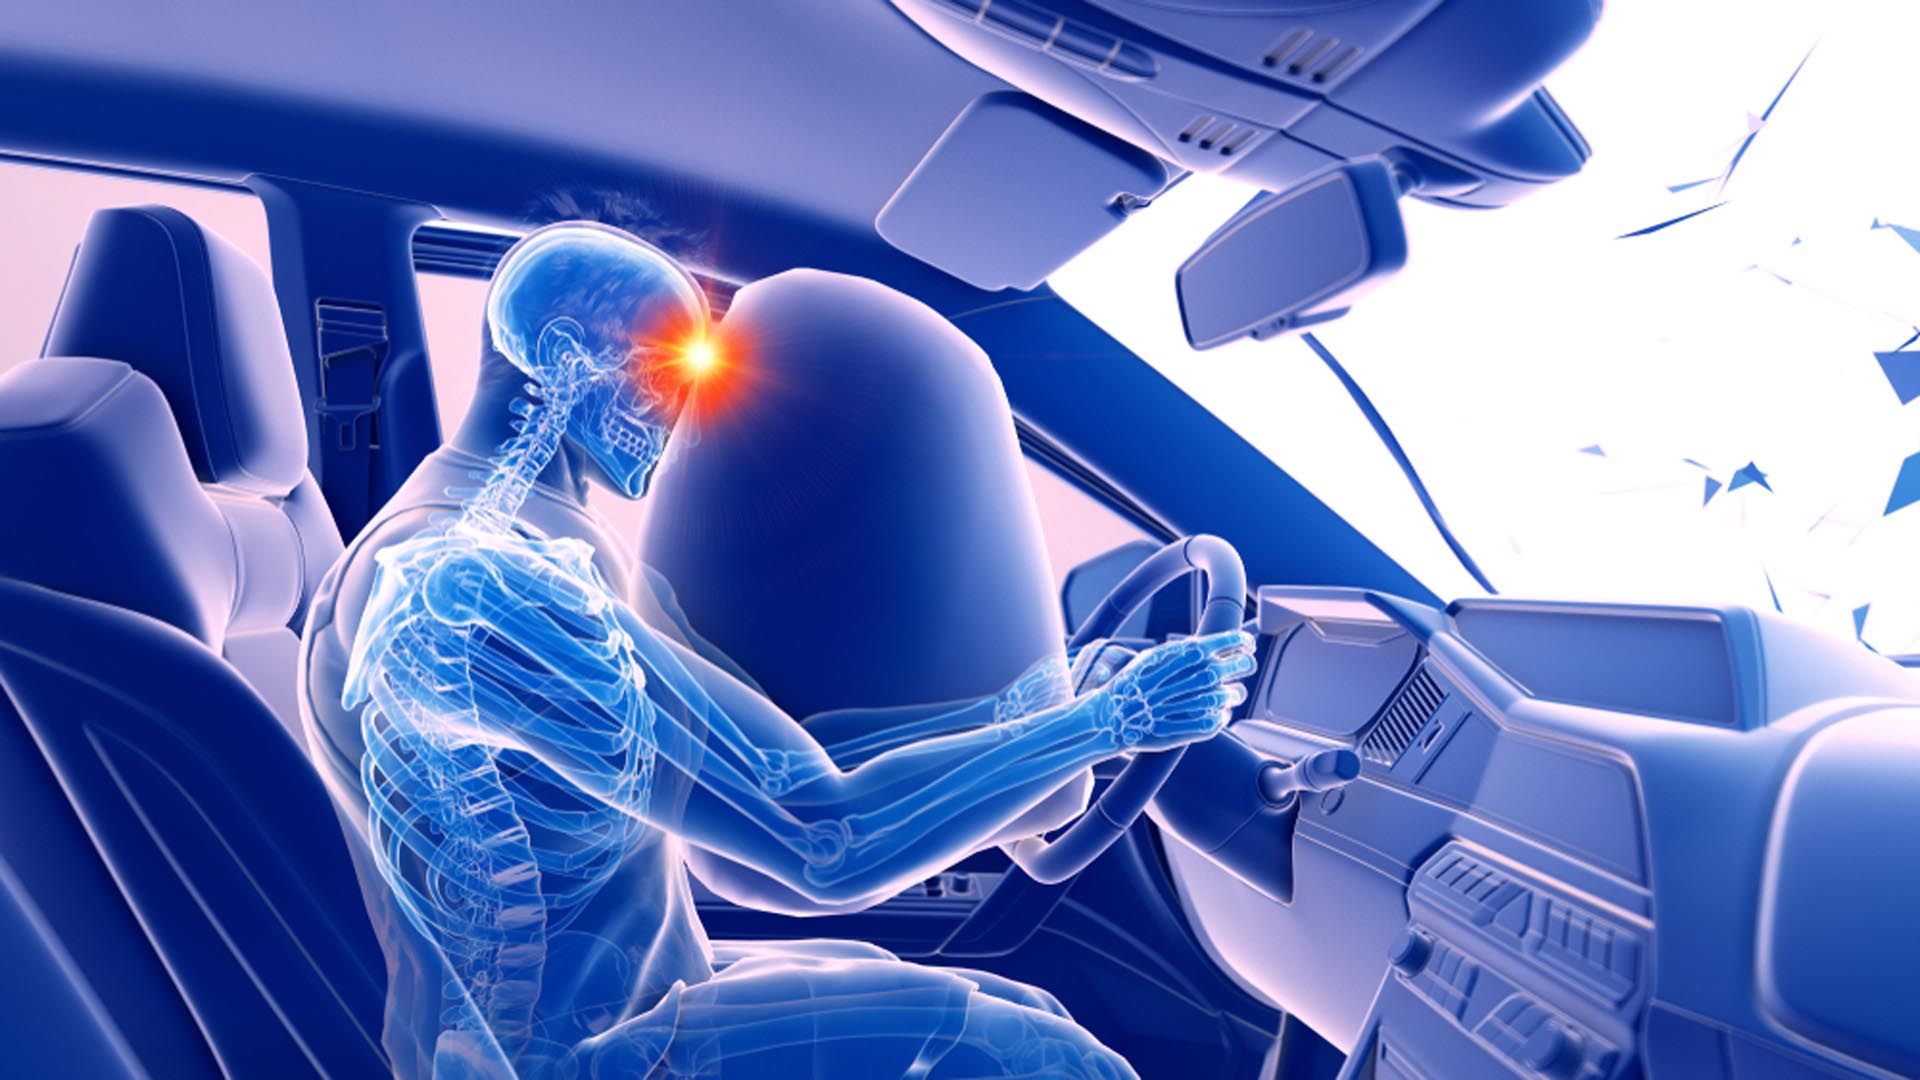 3d Rendered Illustration Two Colliding Car-Henry Chiropractic - 1602 N 9th Ave Pensacola, FL 32503 United States - (850) 435-7777